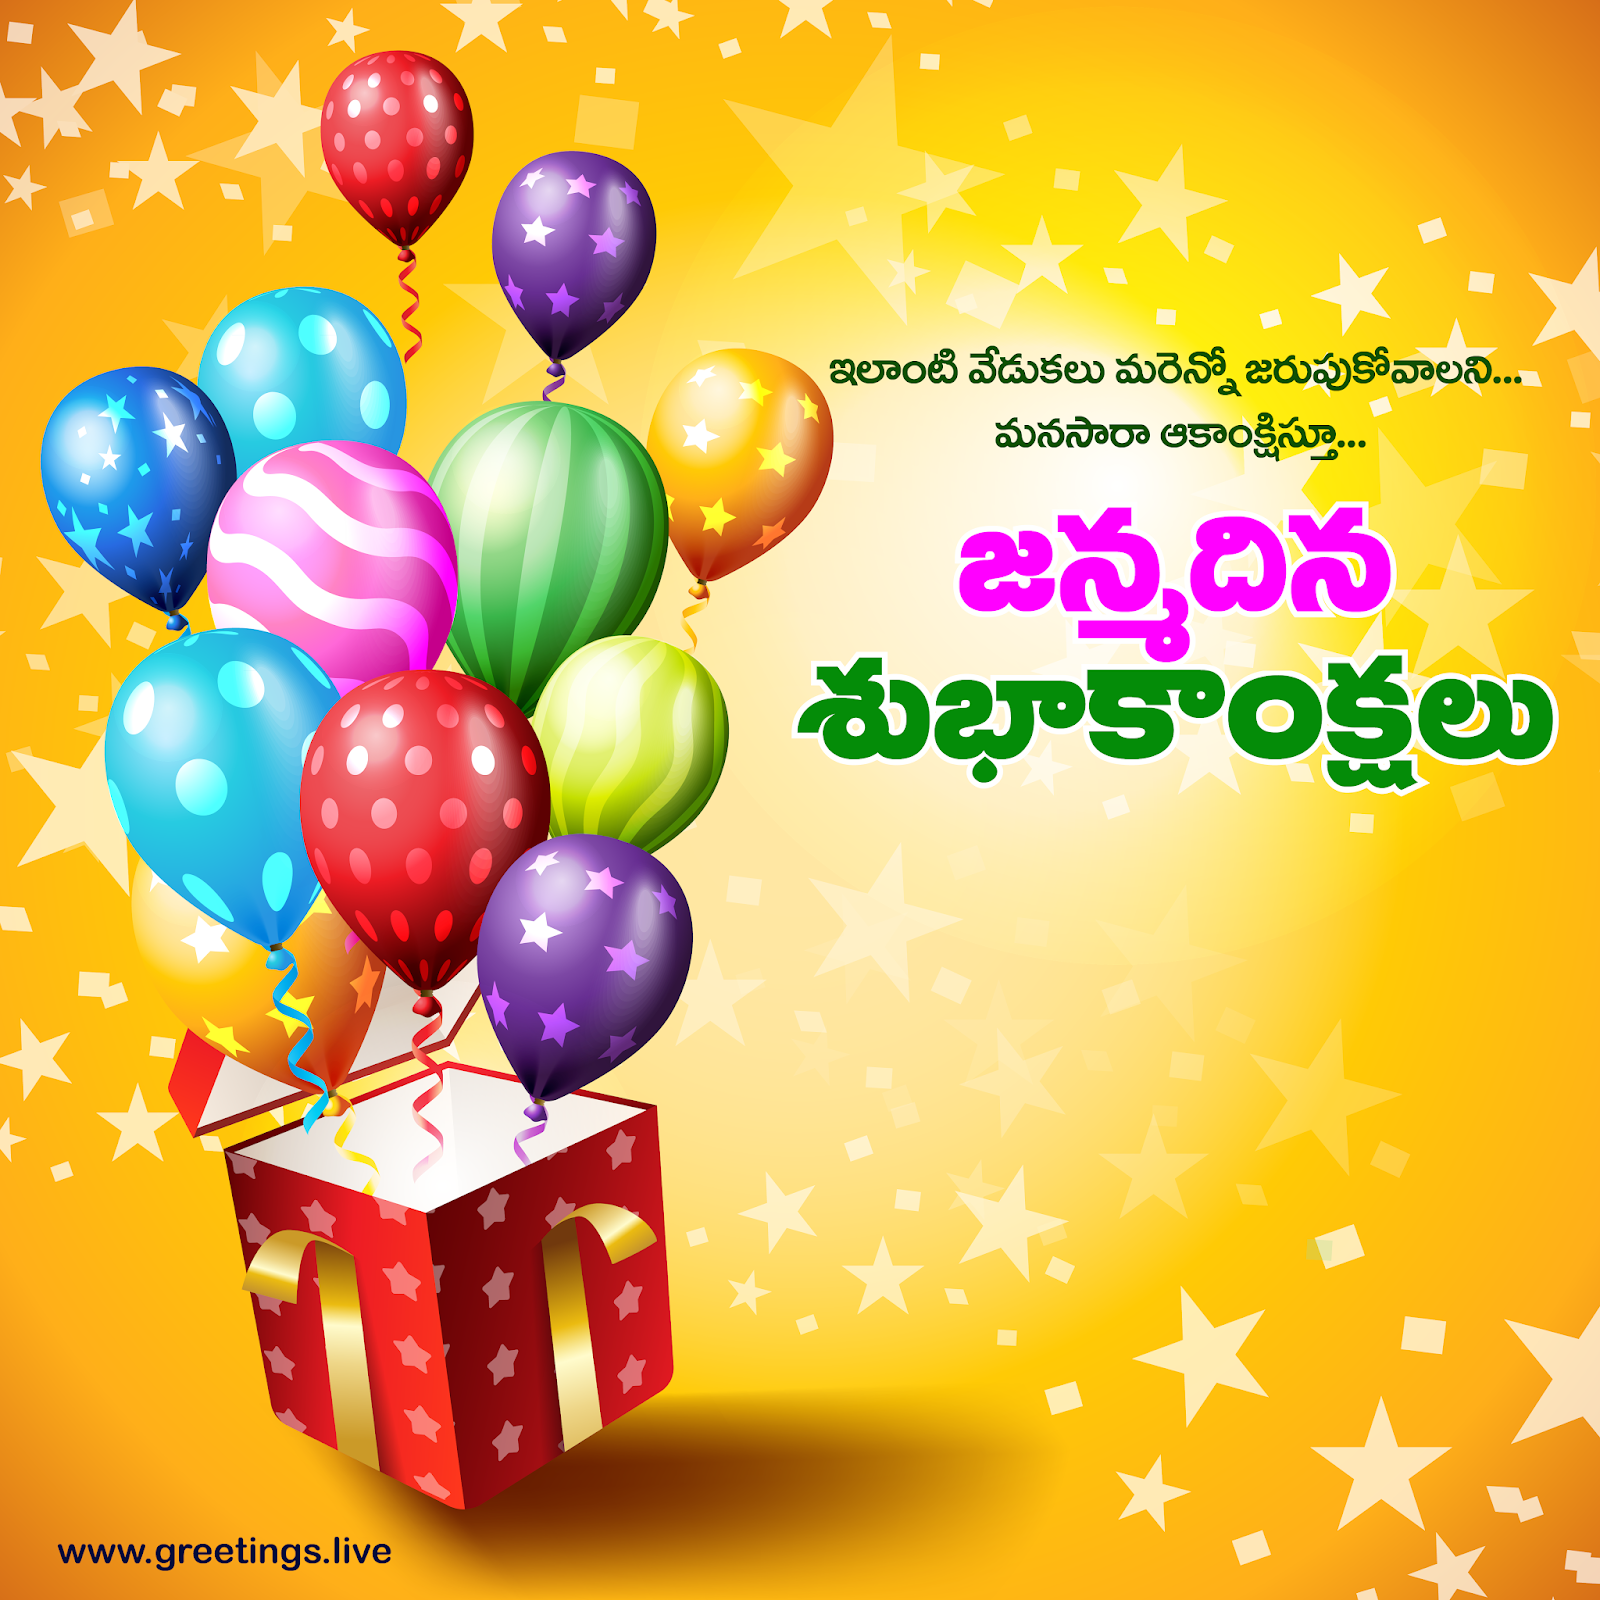 Greetings Live Free Daily Greetings Pictures Festival Gif Images Best Telugu Birthday Wishes Happy Birthday Telugu Images Hd